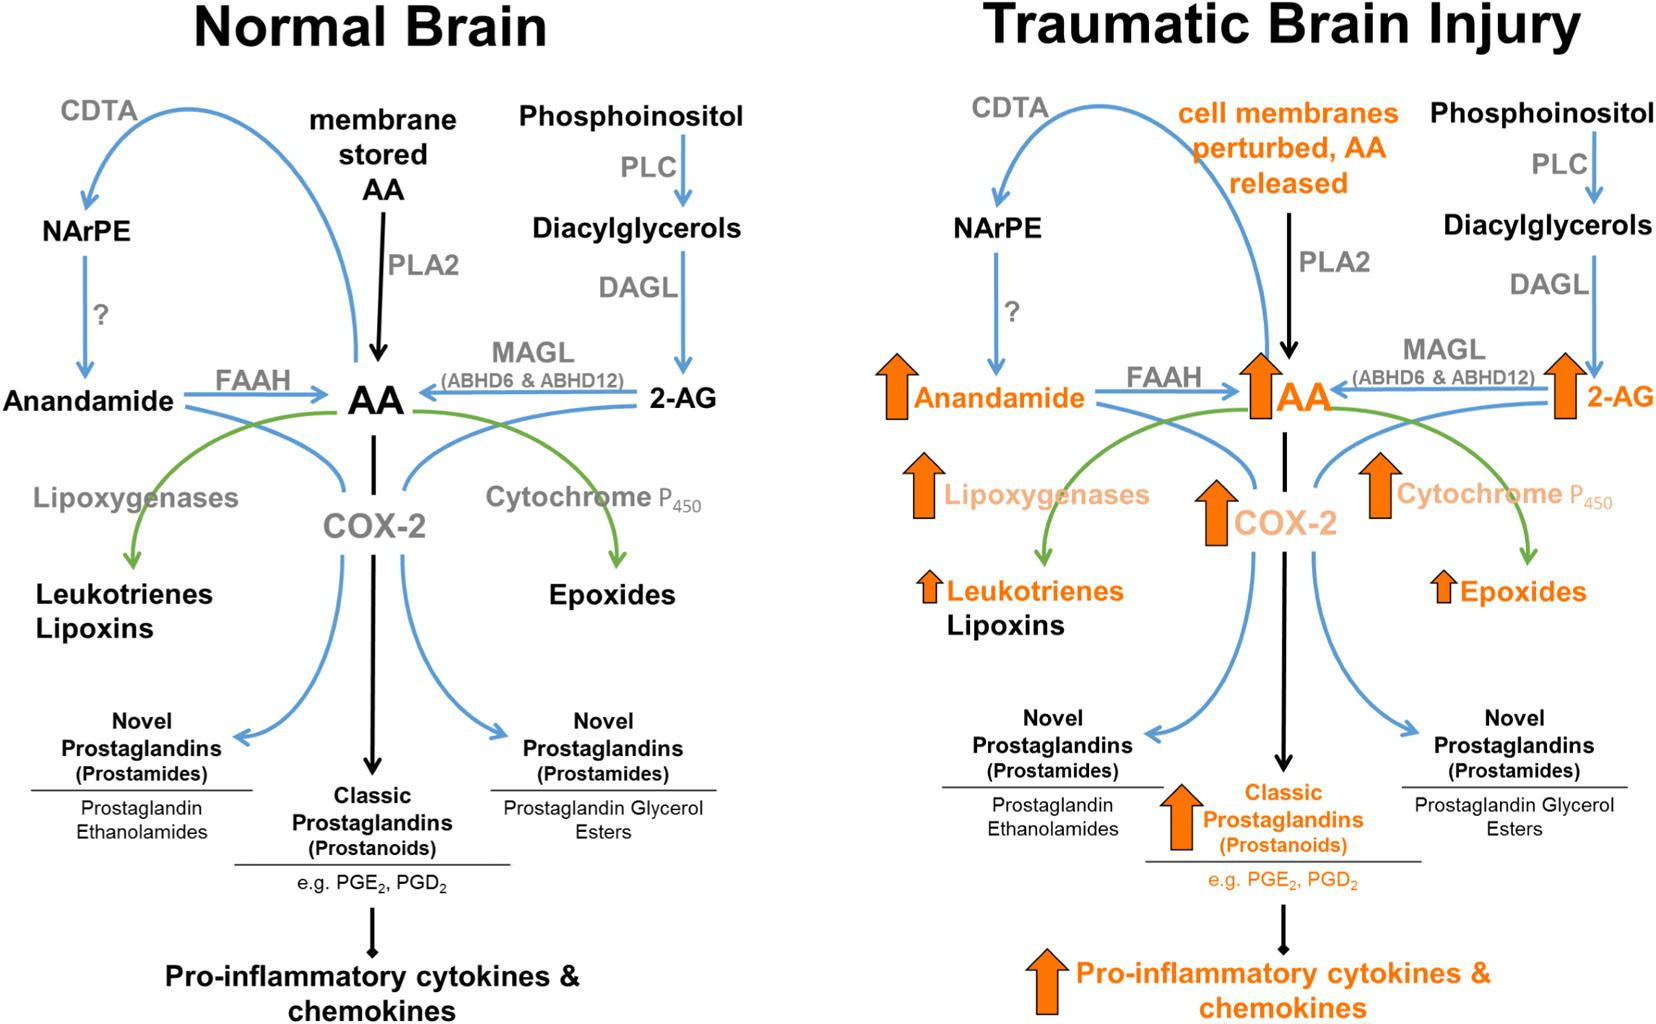 Frontiers | Endocannabinoids: A Promising Impact for Traumatic Brain